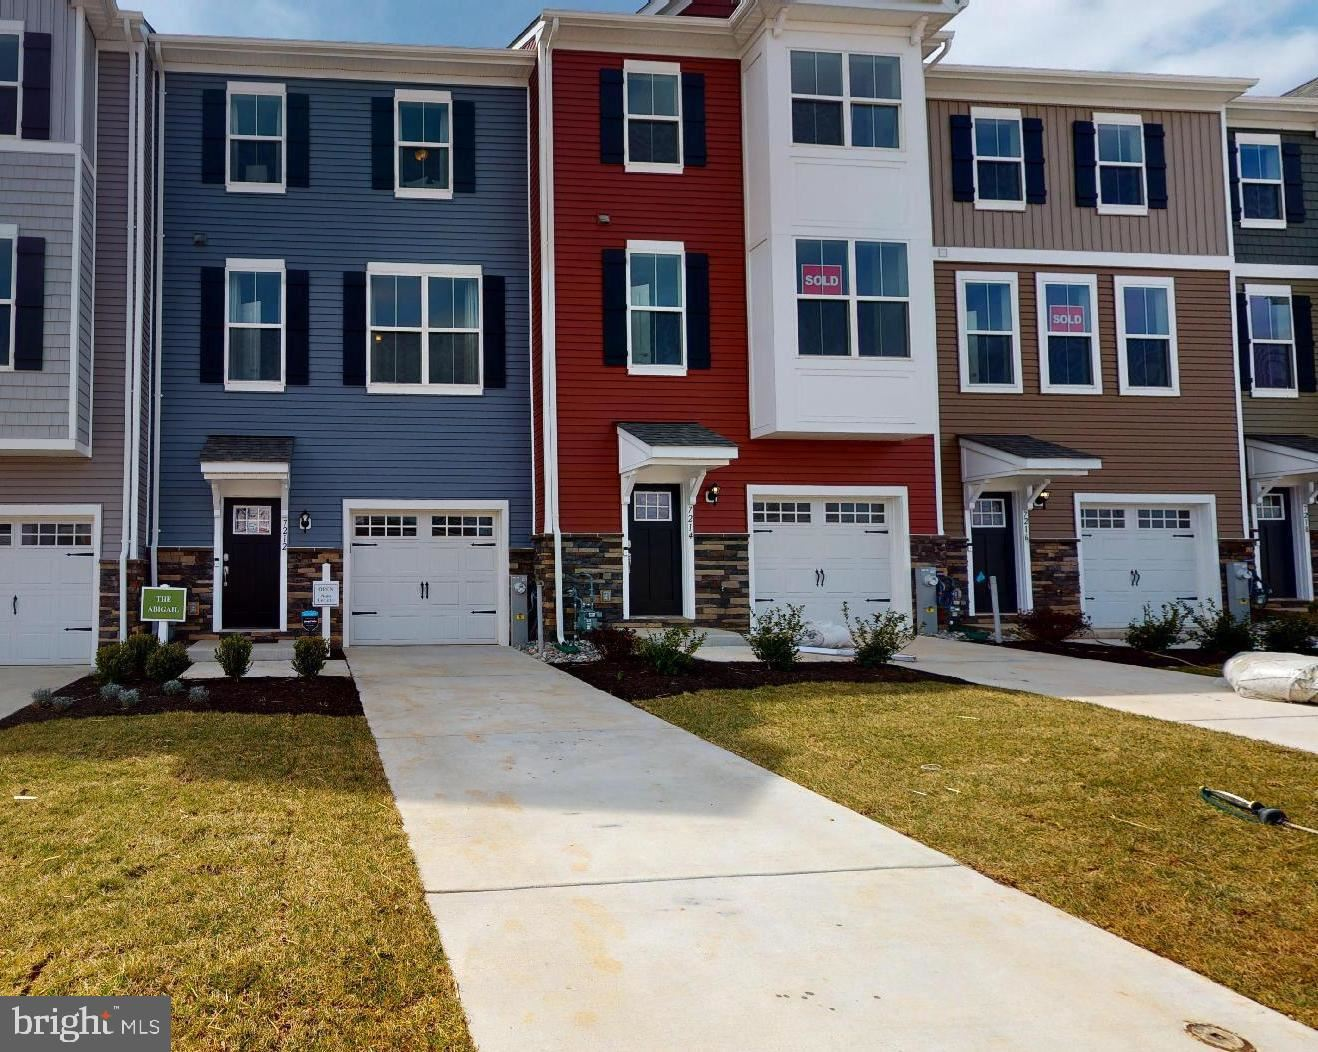 354-A DELANO WAY, Essex, MD 21221 - MLS#: MDBC523474